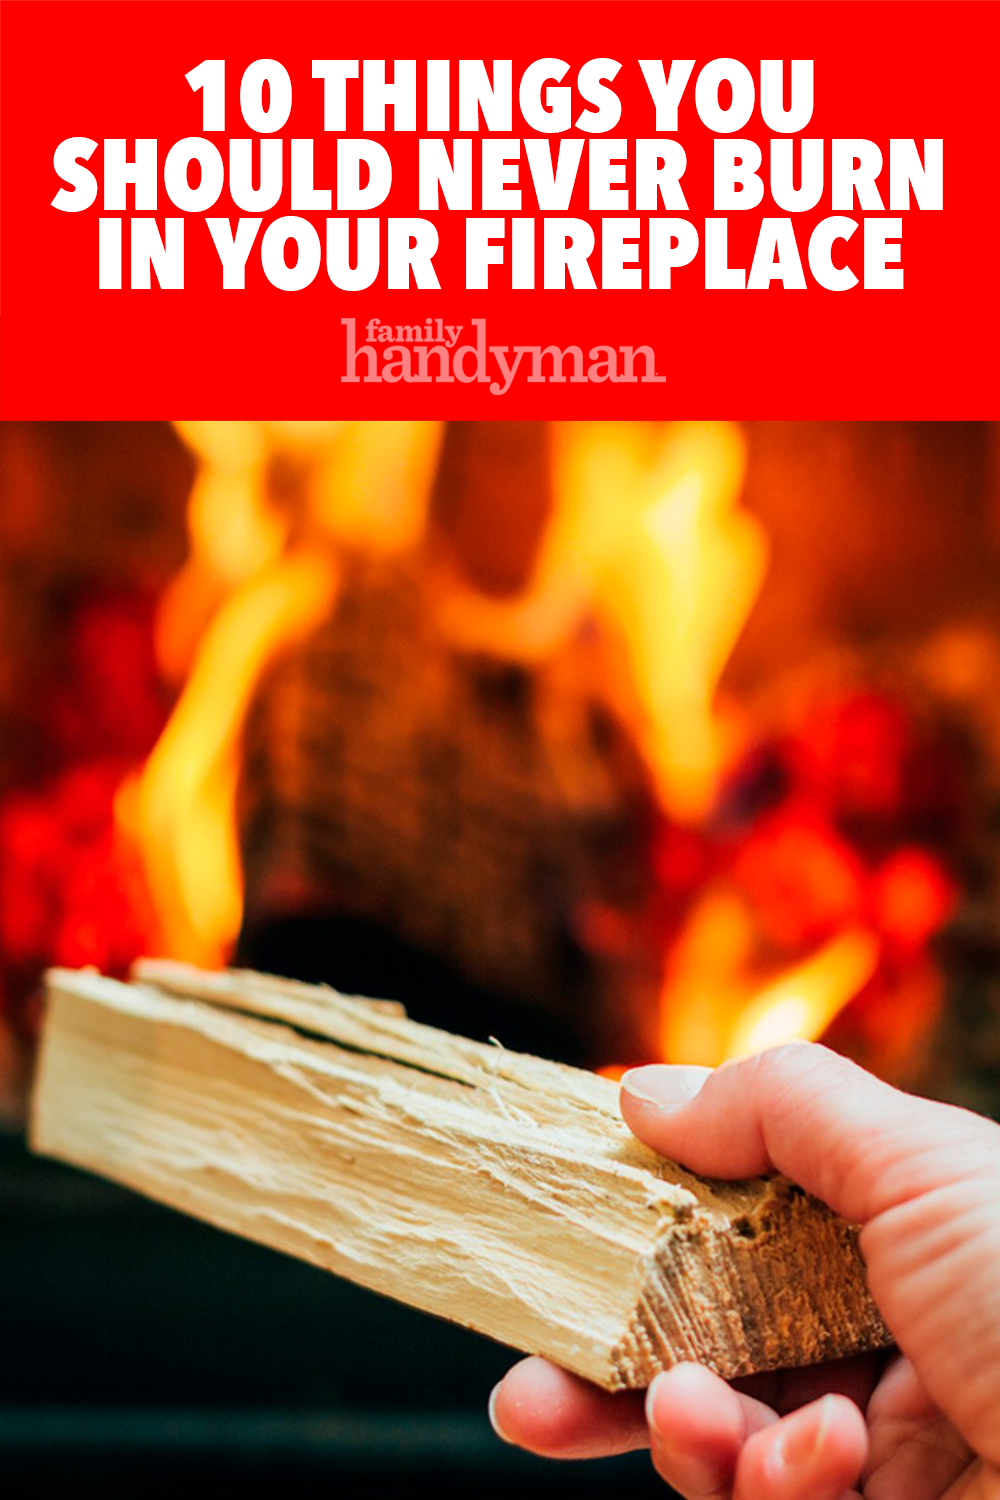 10 Things You Should Never Burn in Your Fireplace Home